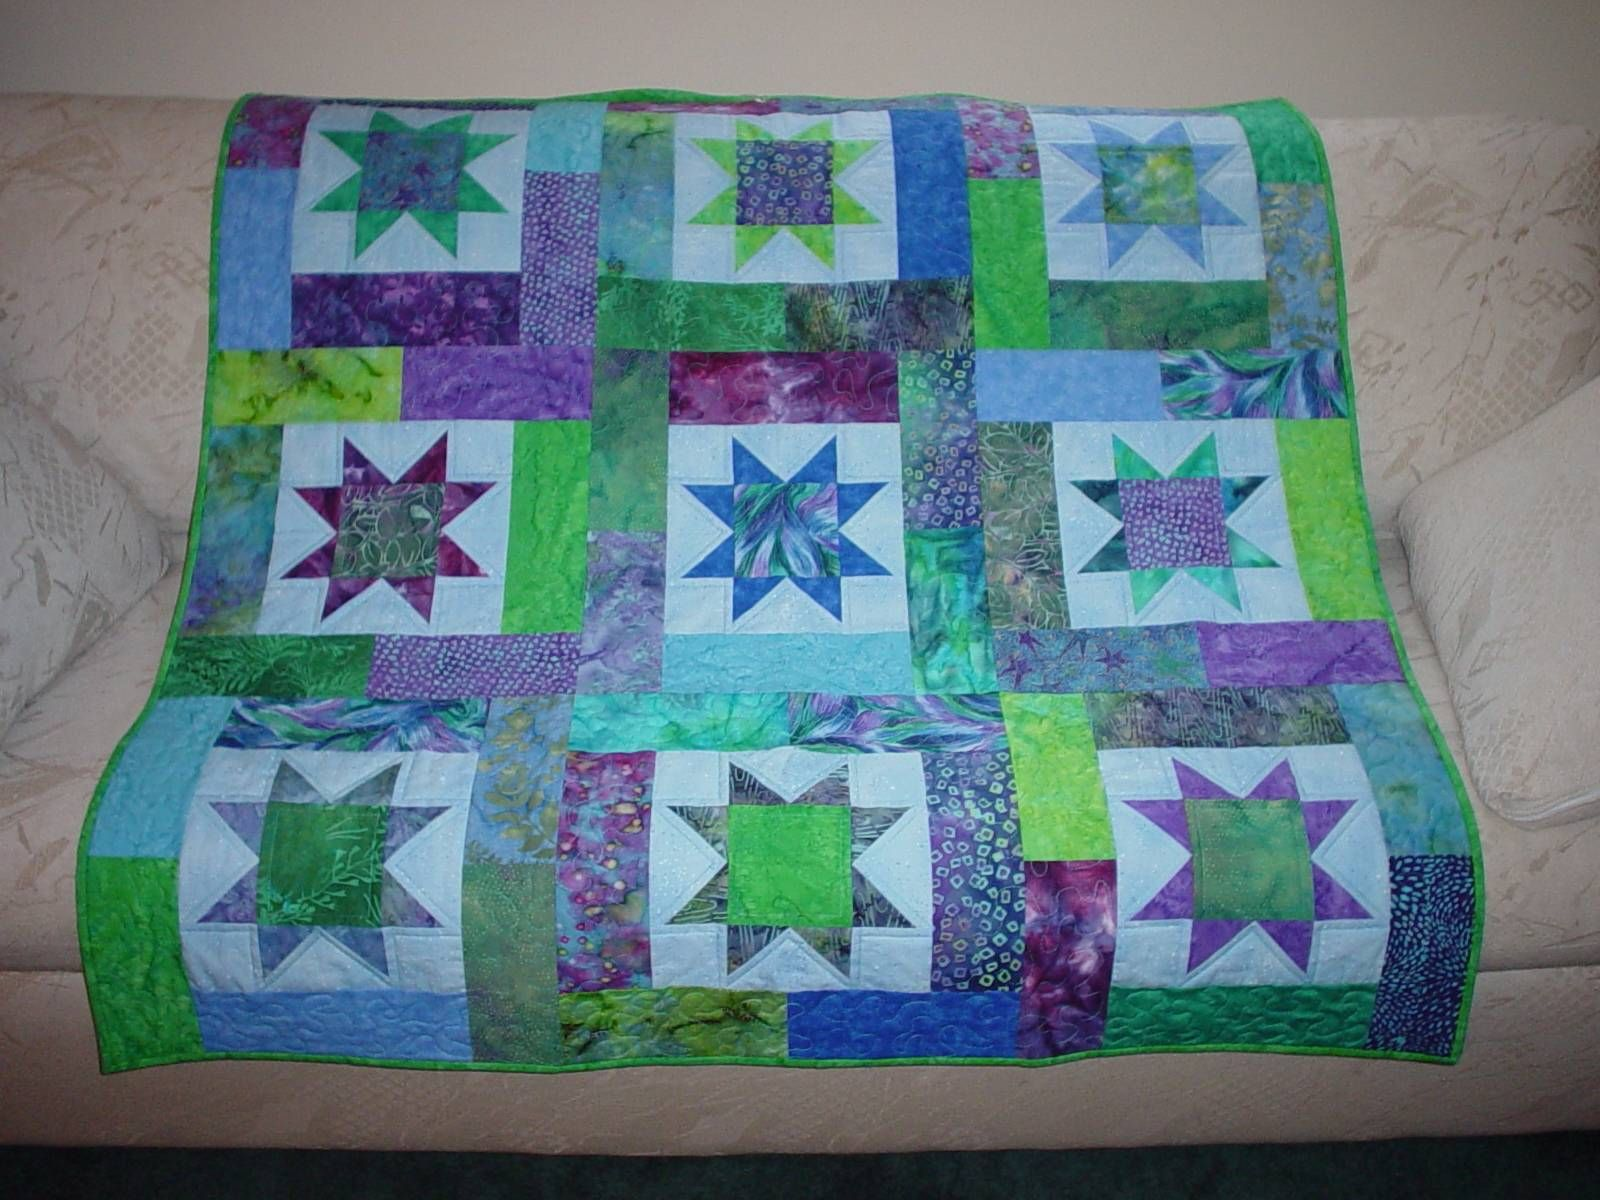 quilt patterns | Baby quilt patterns are one of the most popular ... : popular quilts - Adamdwight.com